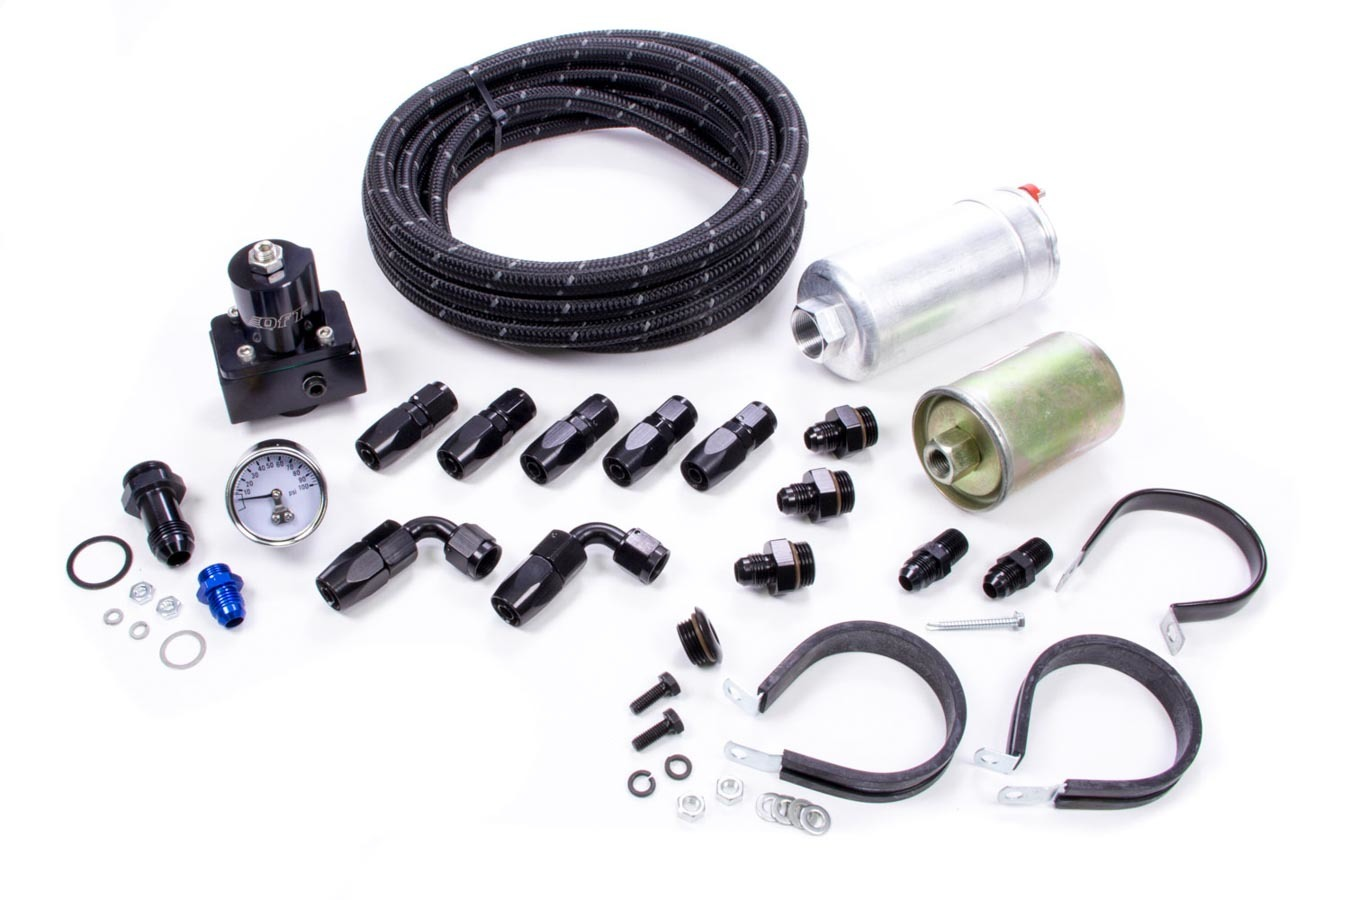 Quick Fuel QFI-502 Fuel System, QFI, Braided Nylon Hose / Filters / Fittings / Pump / Regulator, 6 AN, Black / Silver, Kit